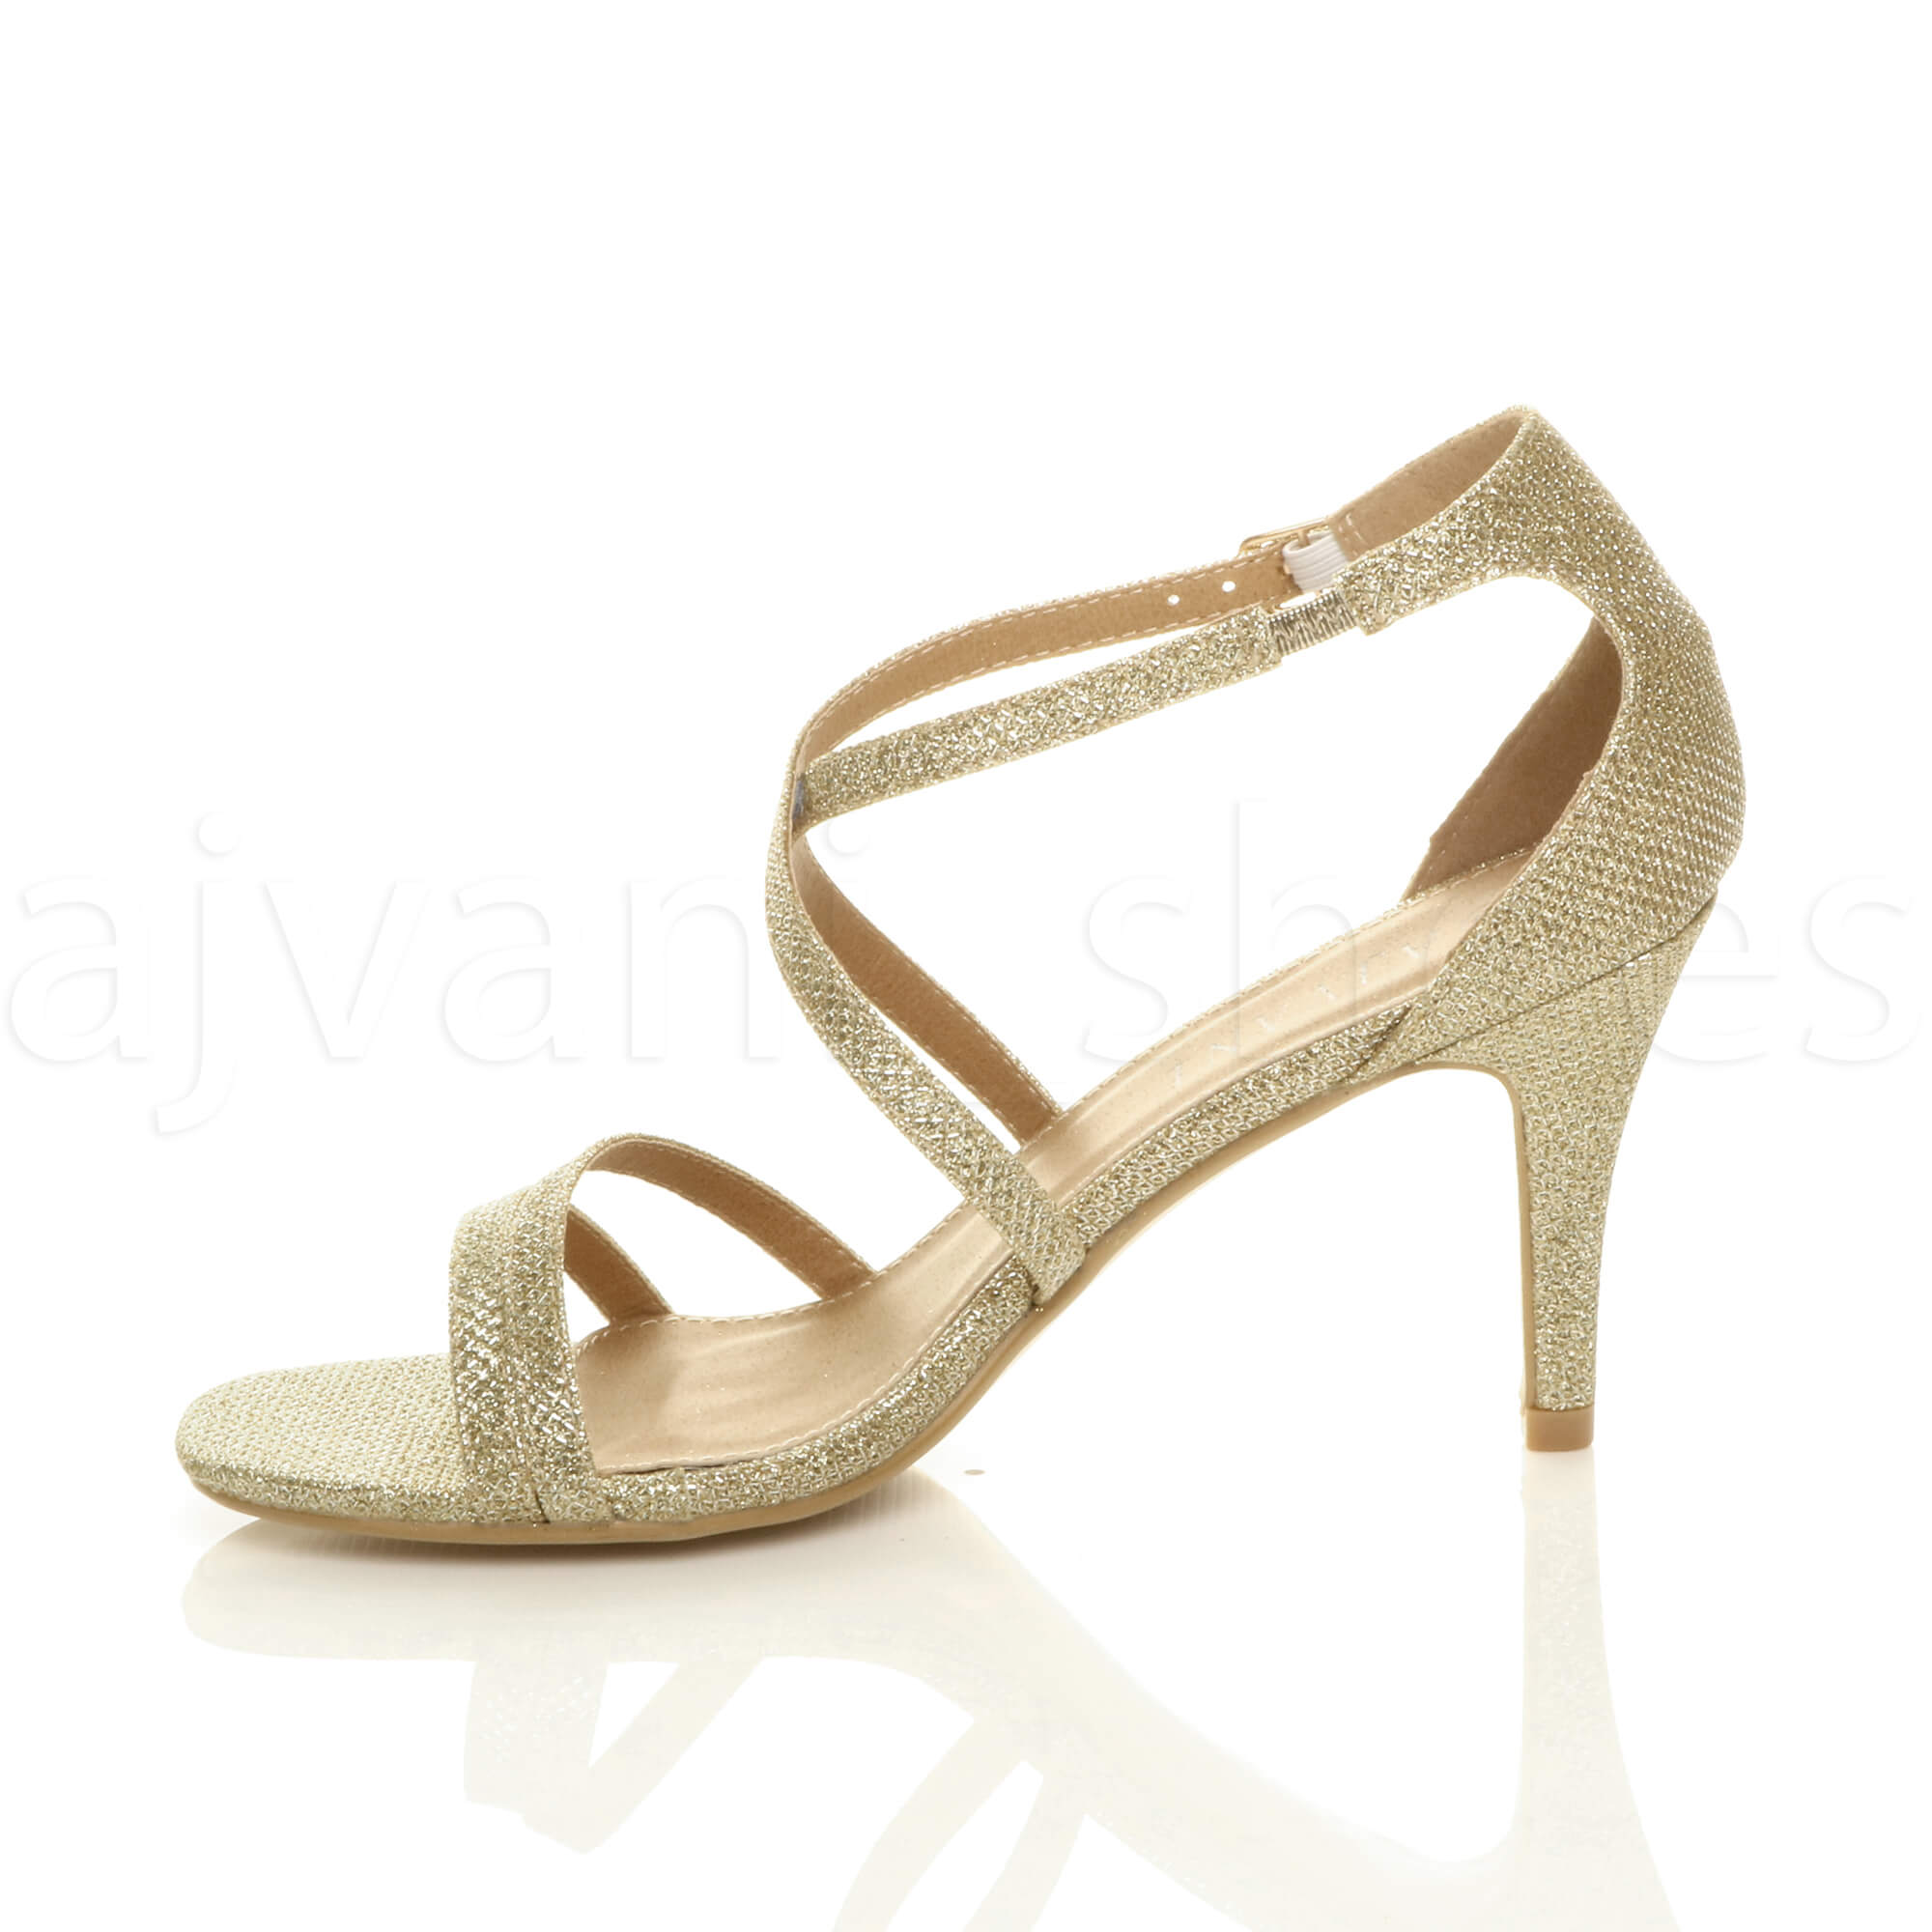 WOMENS-LADIES-MID-HIGH-HEEL-STRAPPY-CROSSOVER-WEDDING-PROM-SANDALS-SHOES-SIZE thumbnail 74